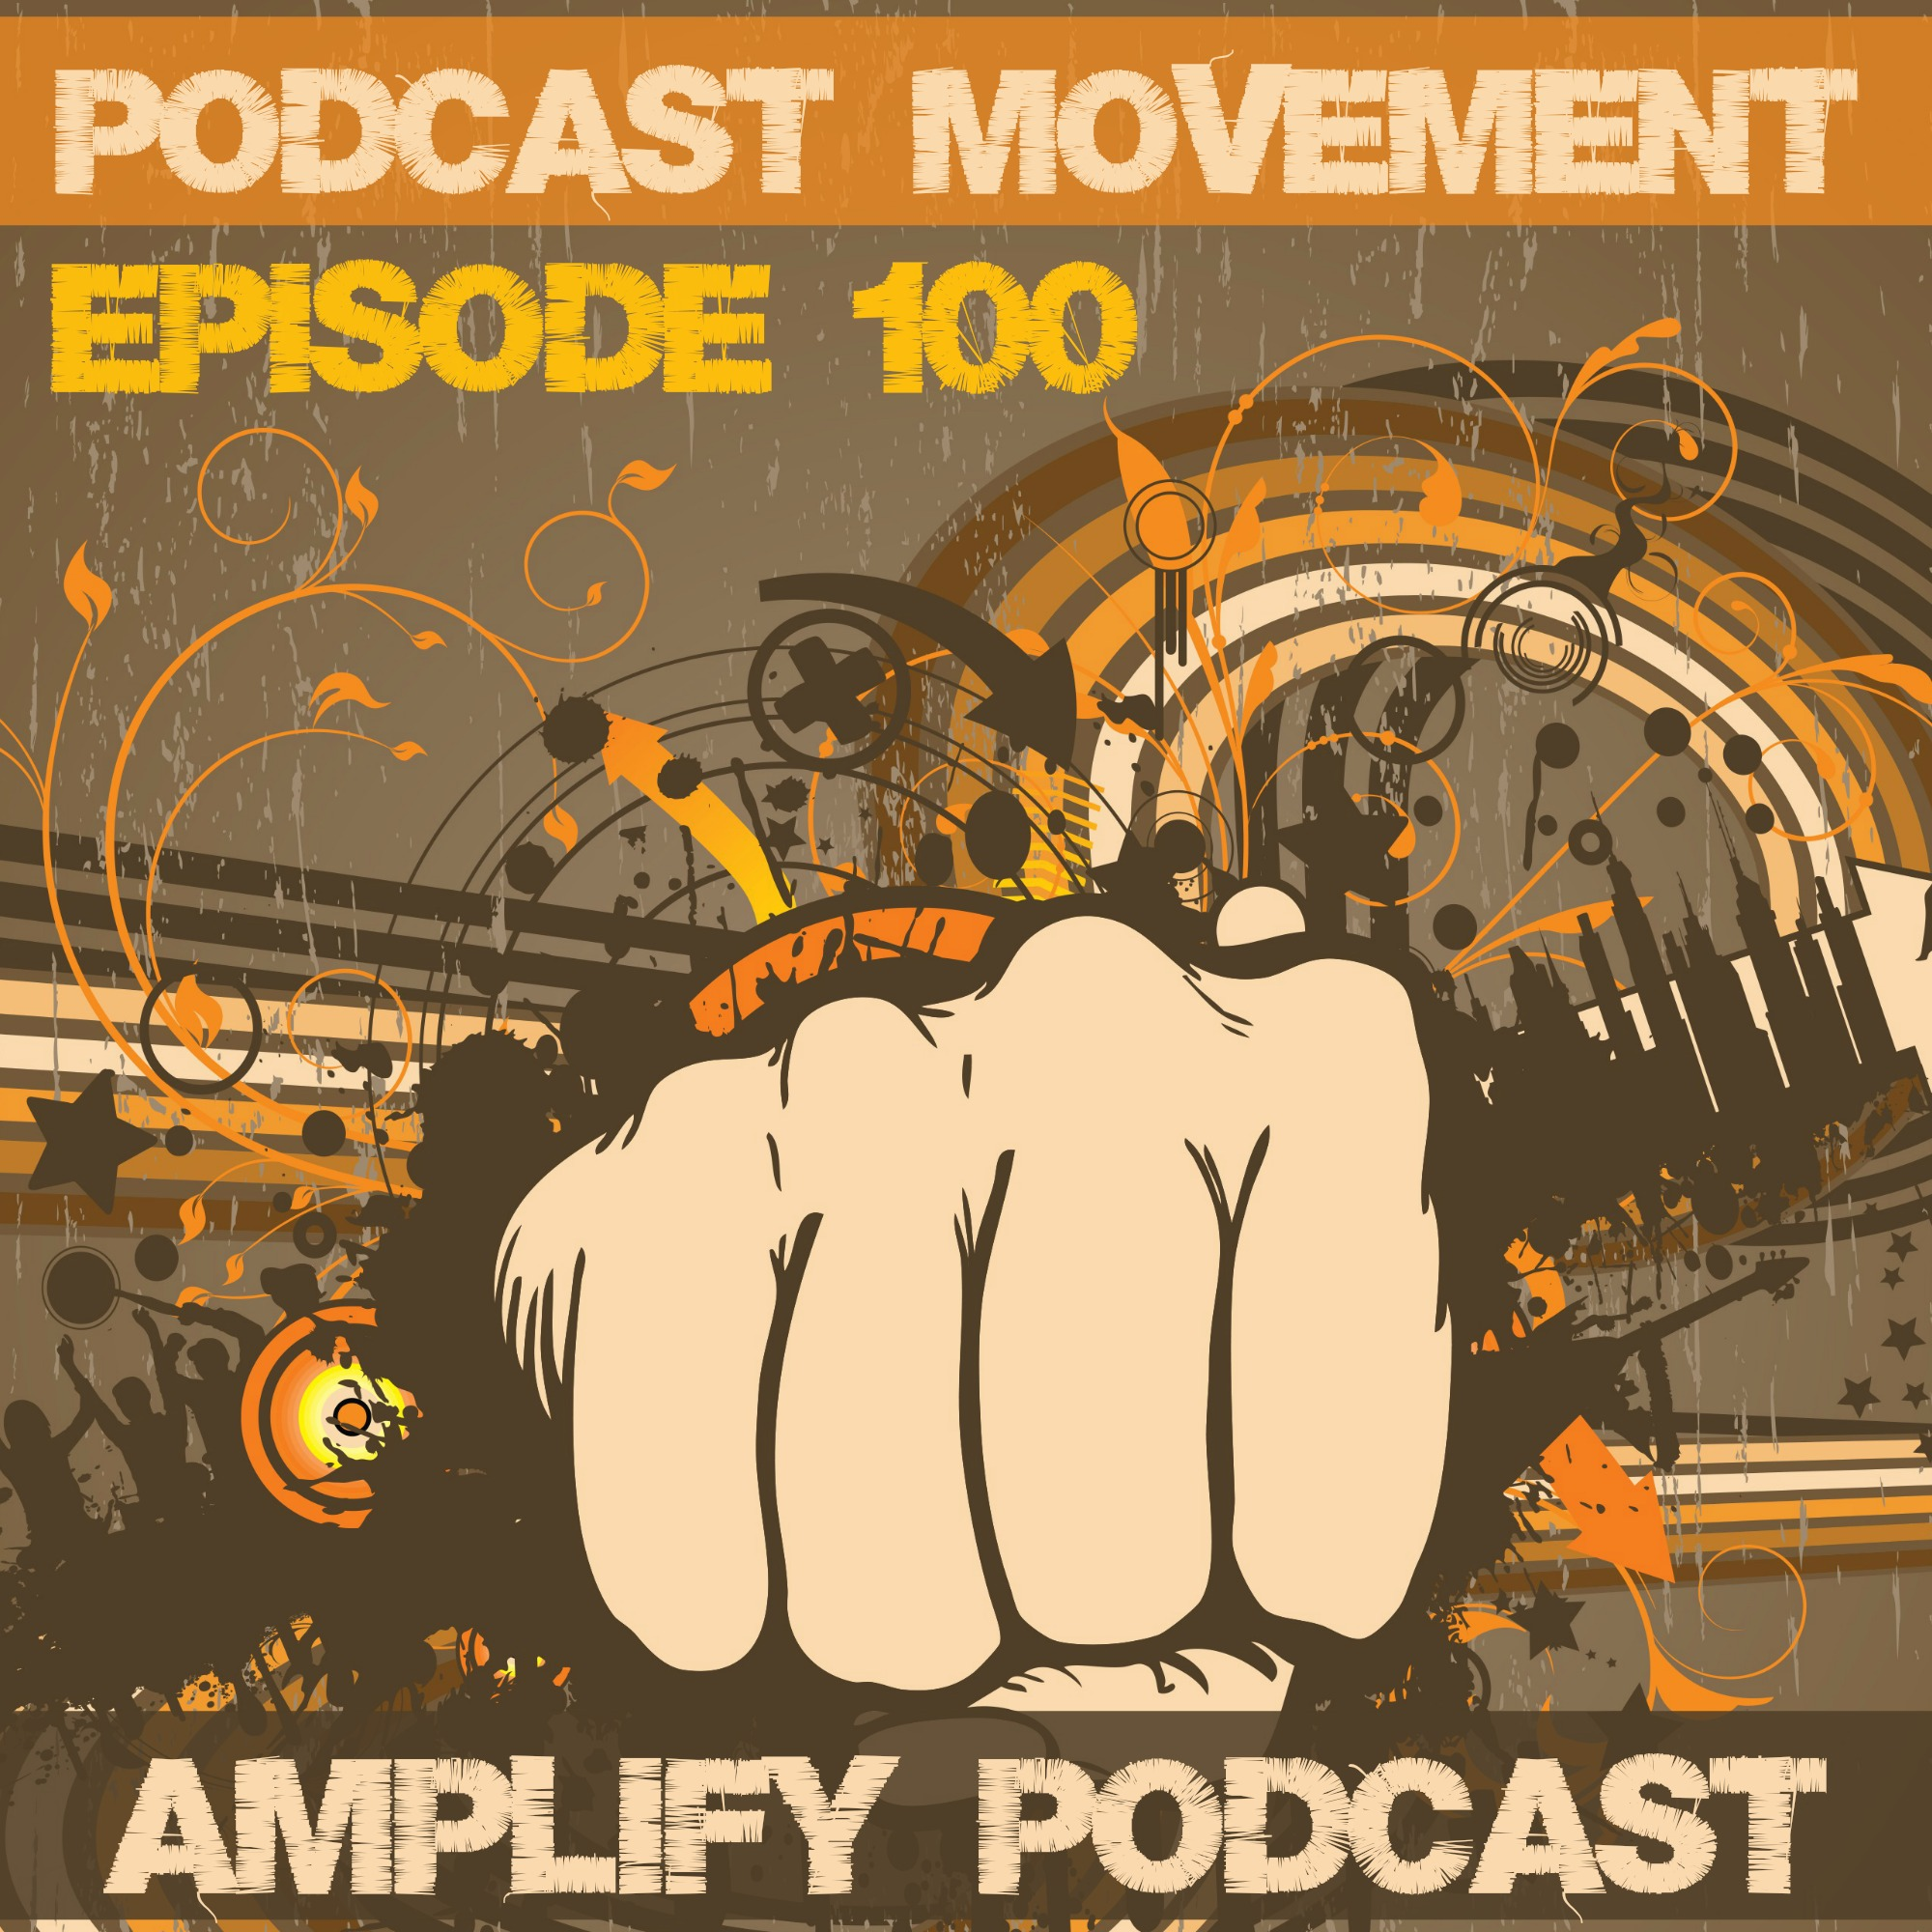 podcast-movement-amplify